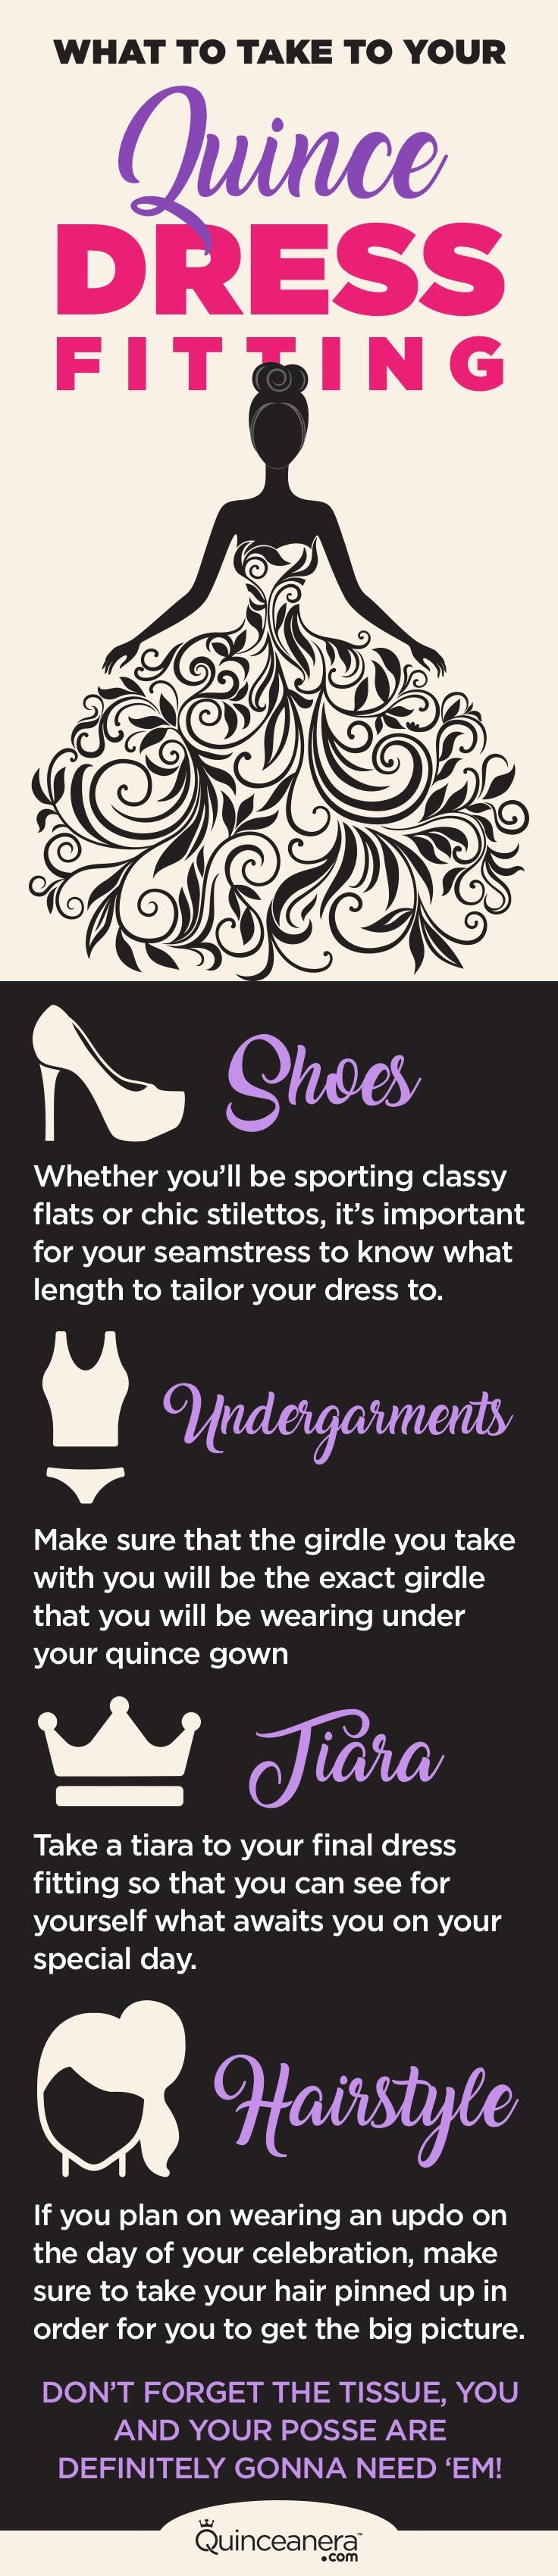 Quinceanera.com presents a list of items that you must take with you when visiting your seamstress, and the reasons why leaving home without 'em might set you up for less than perfect quince gown alterations.